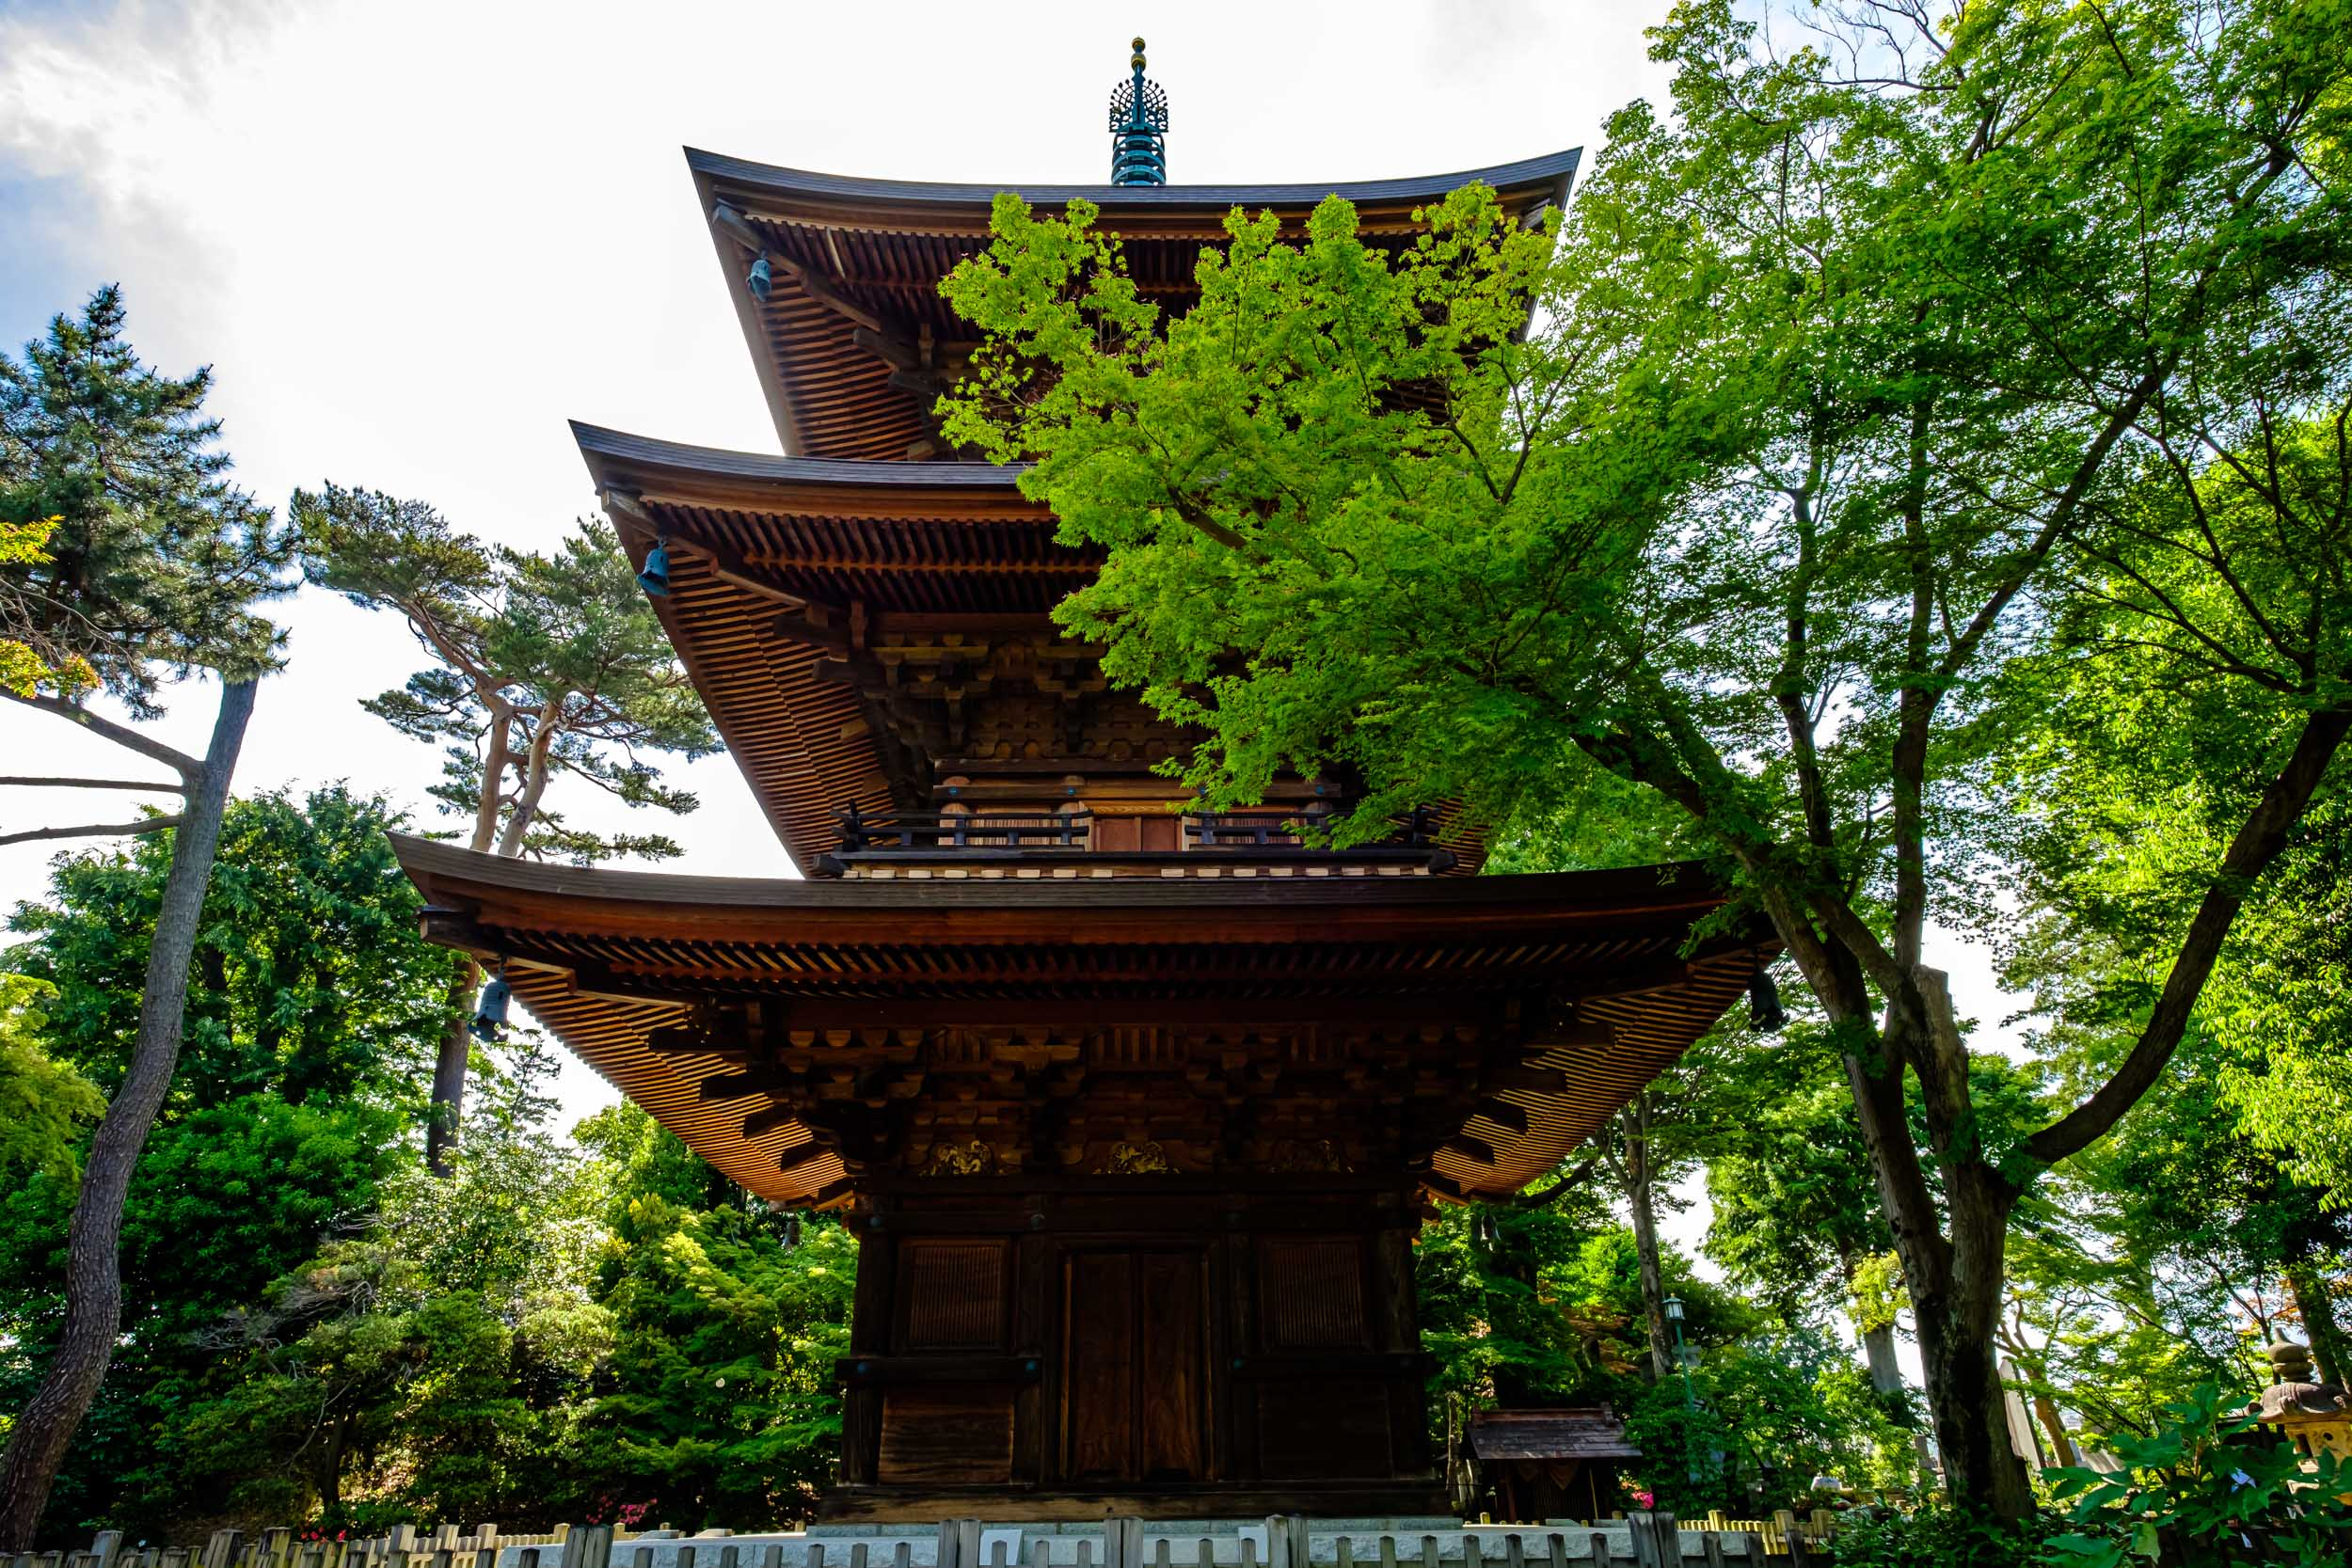 The pagoda at Gotokuji